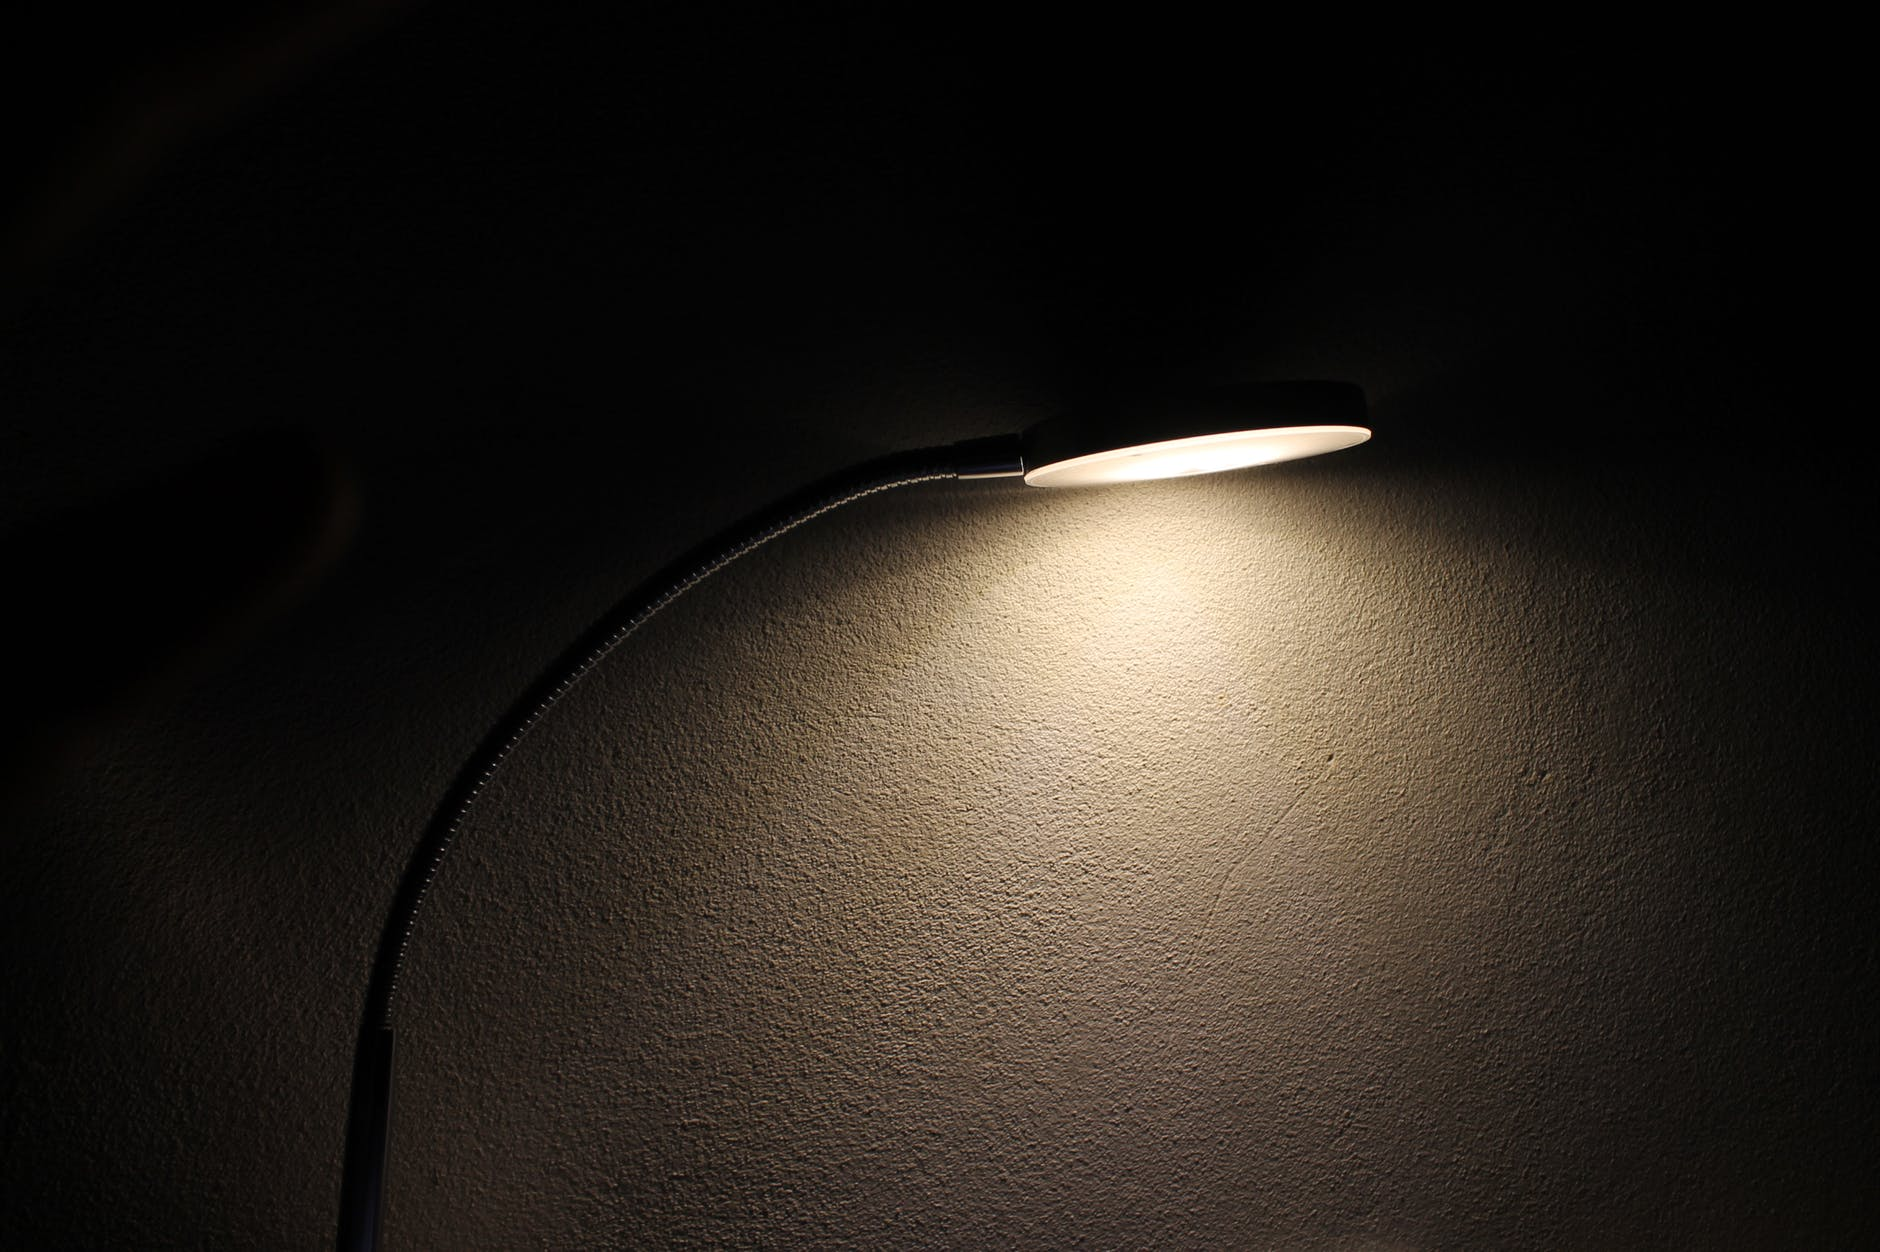 An in-depth review of the best table lamps available in 2018.